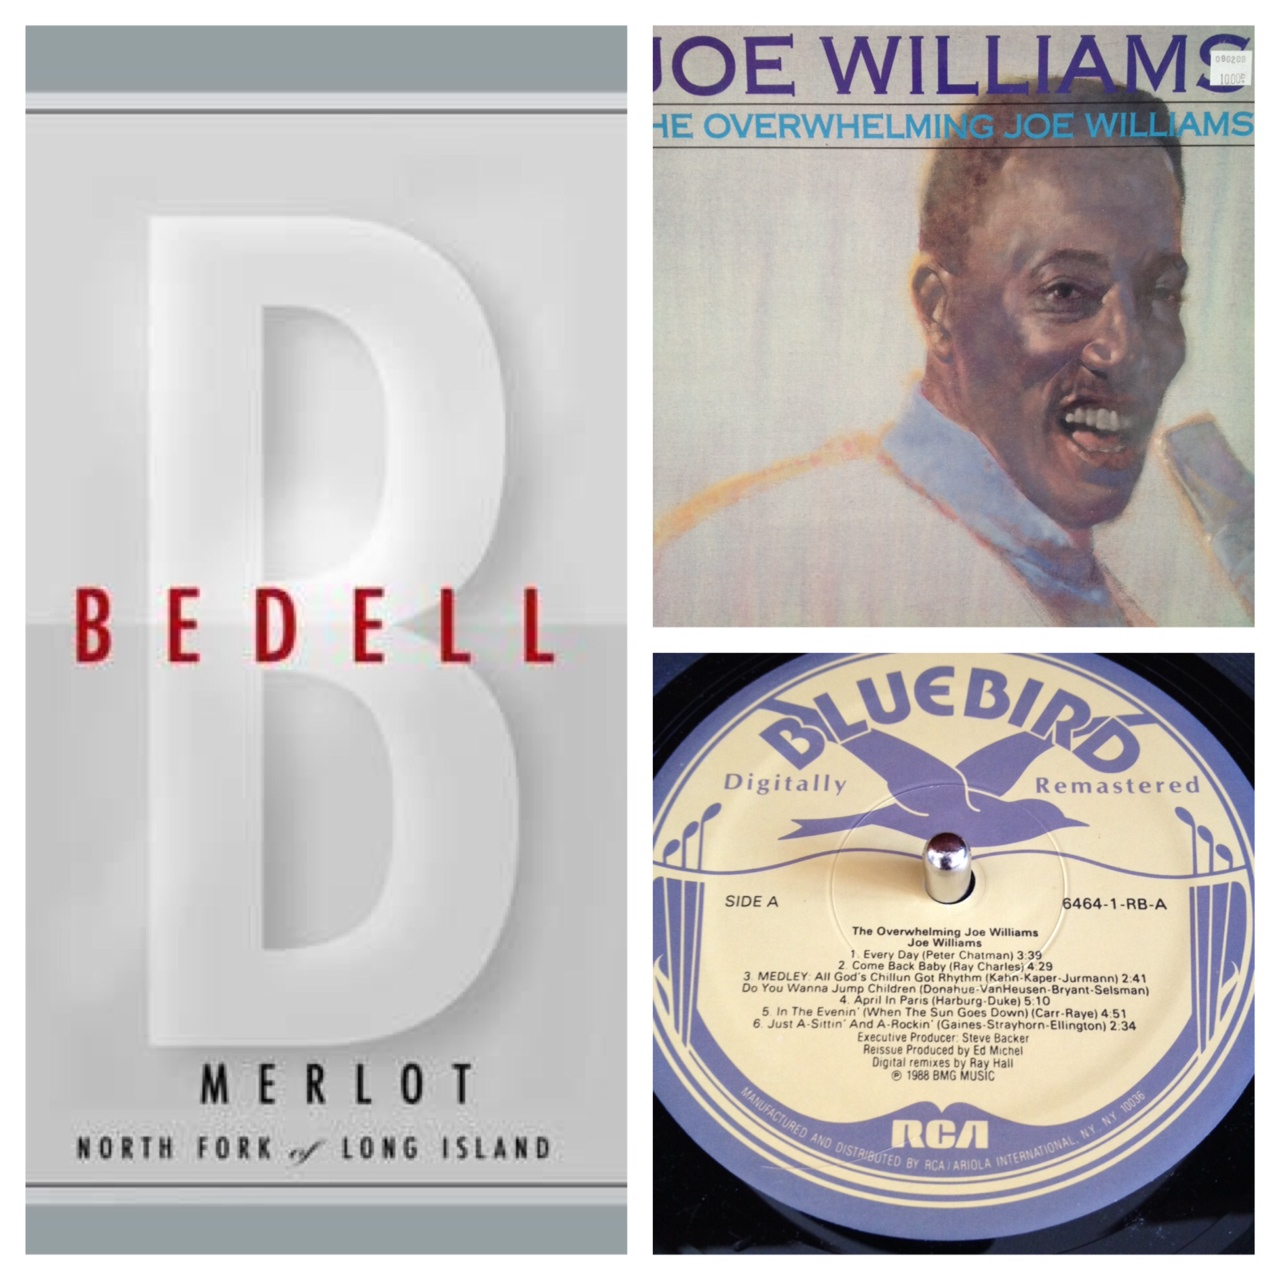 Joe Williams vinyl,  The Overwhelming Joe Williams , and Bedell Cellars Merlot